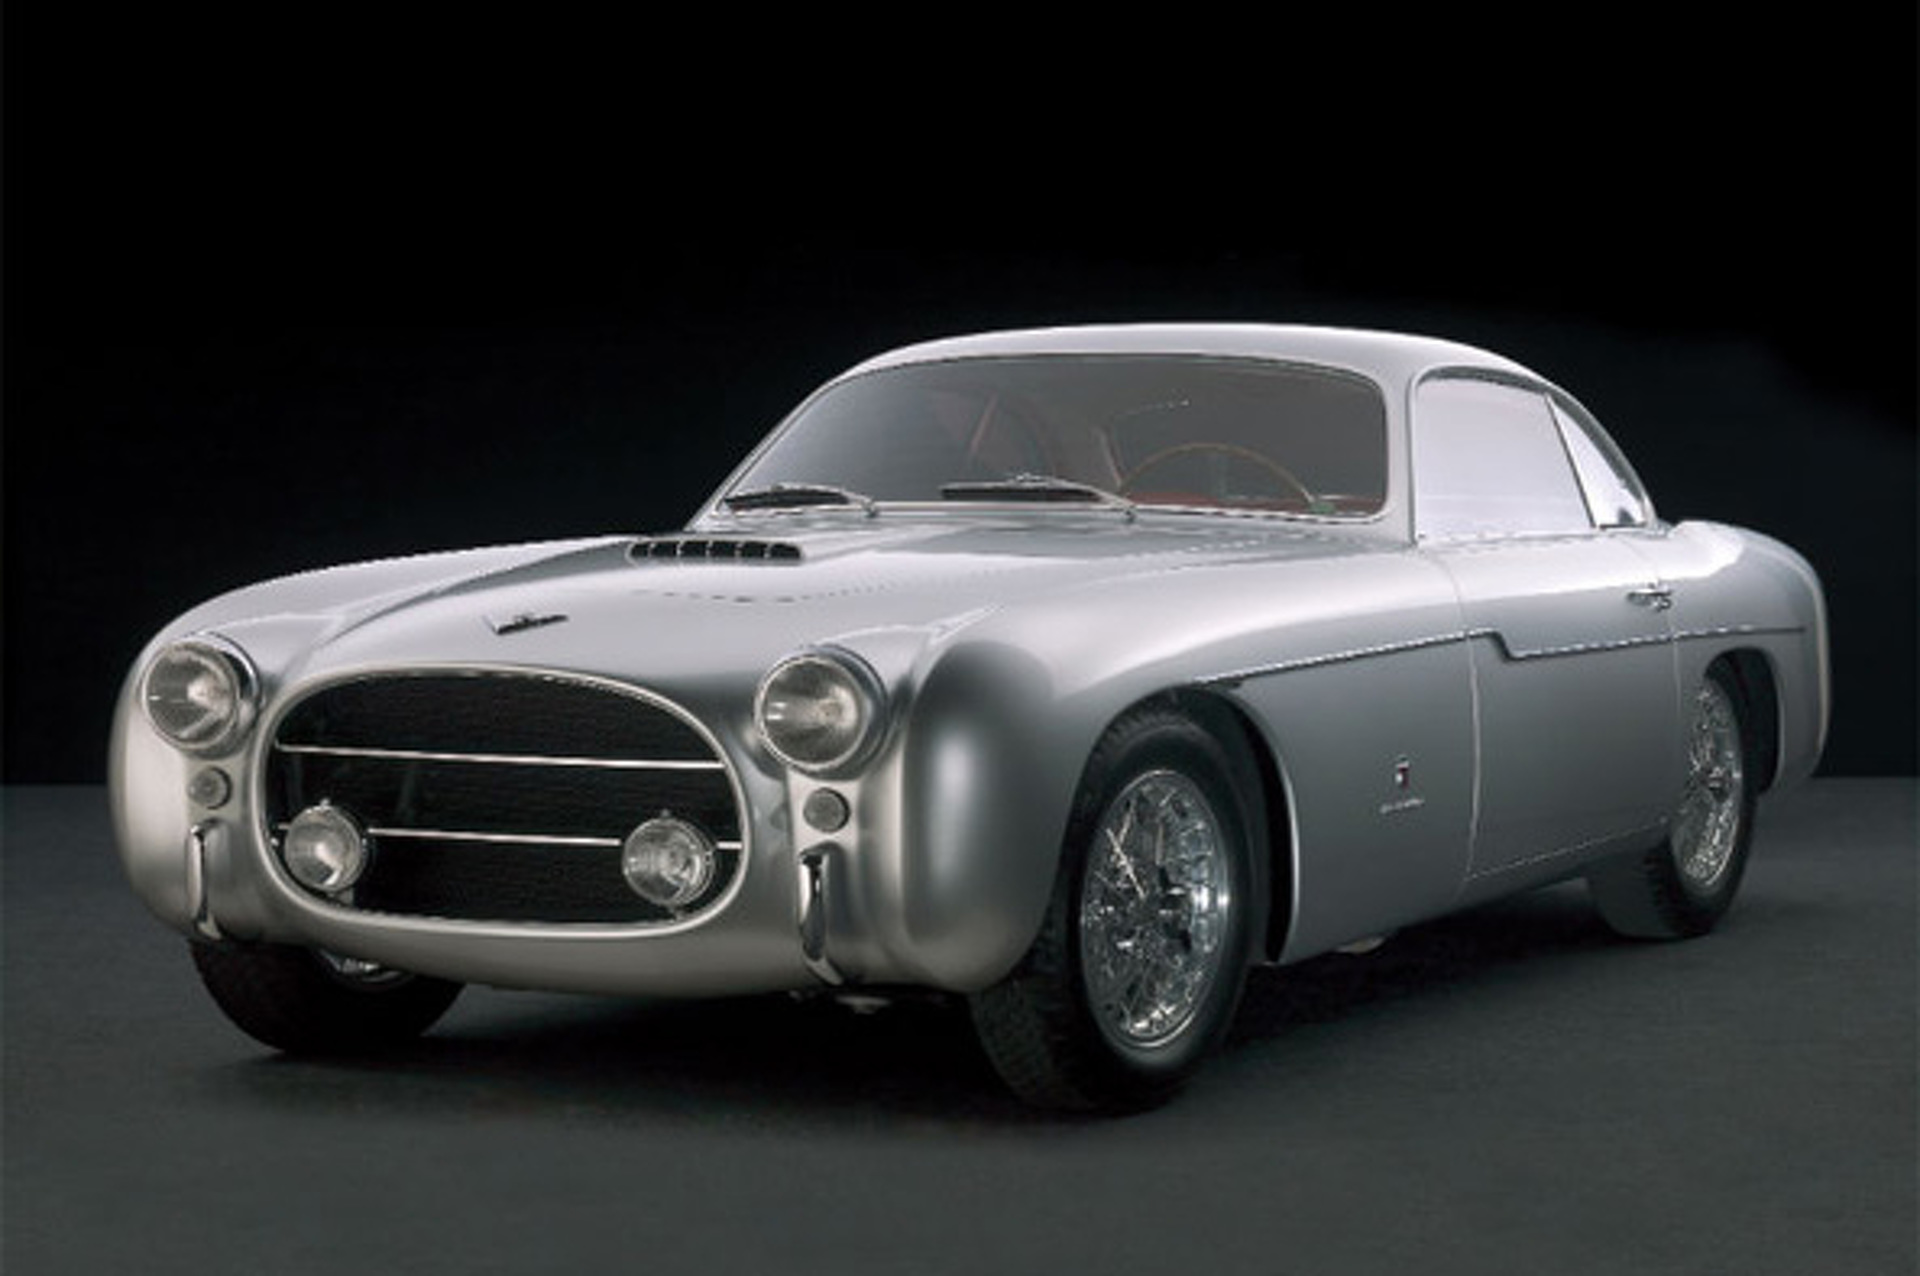 Seven Deadly Sinners: Cars We'd Kill To Own